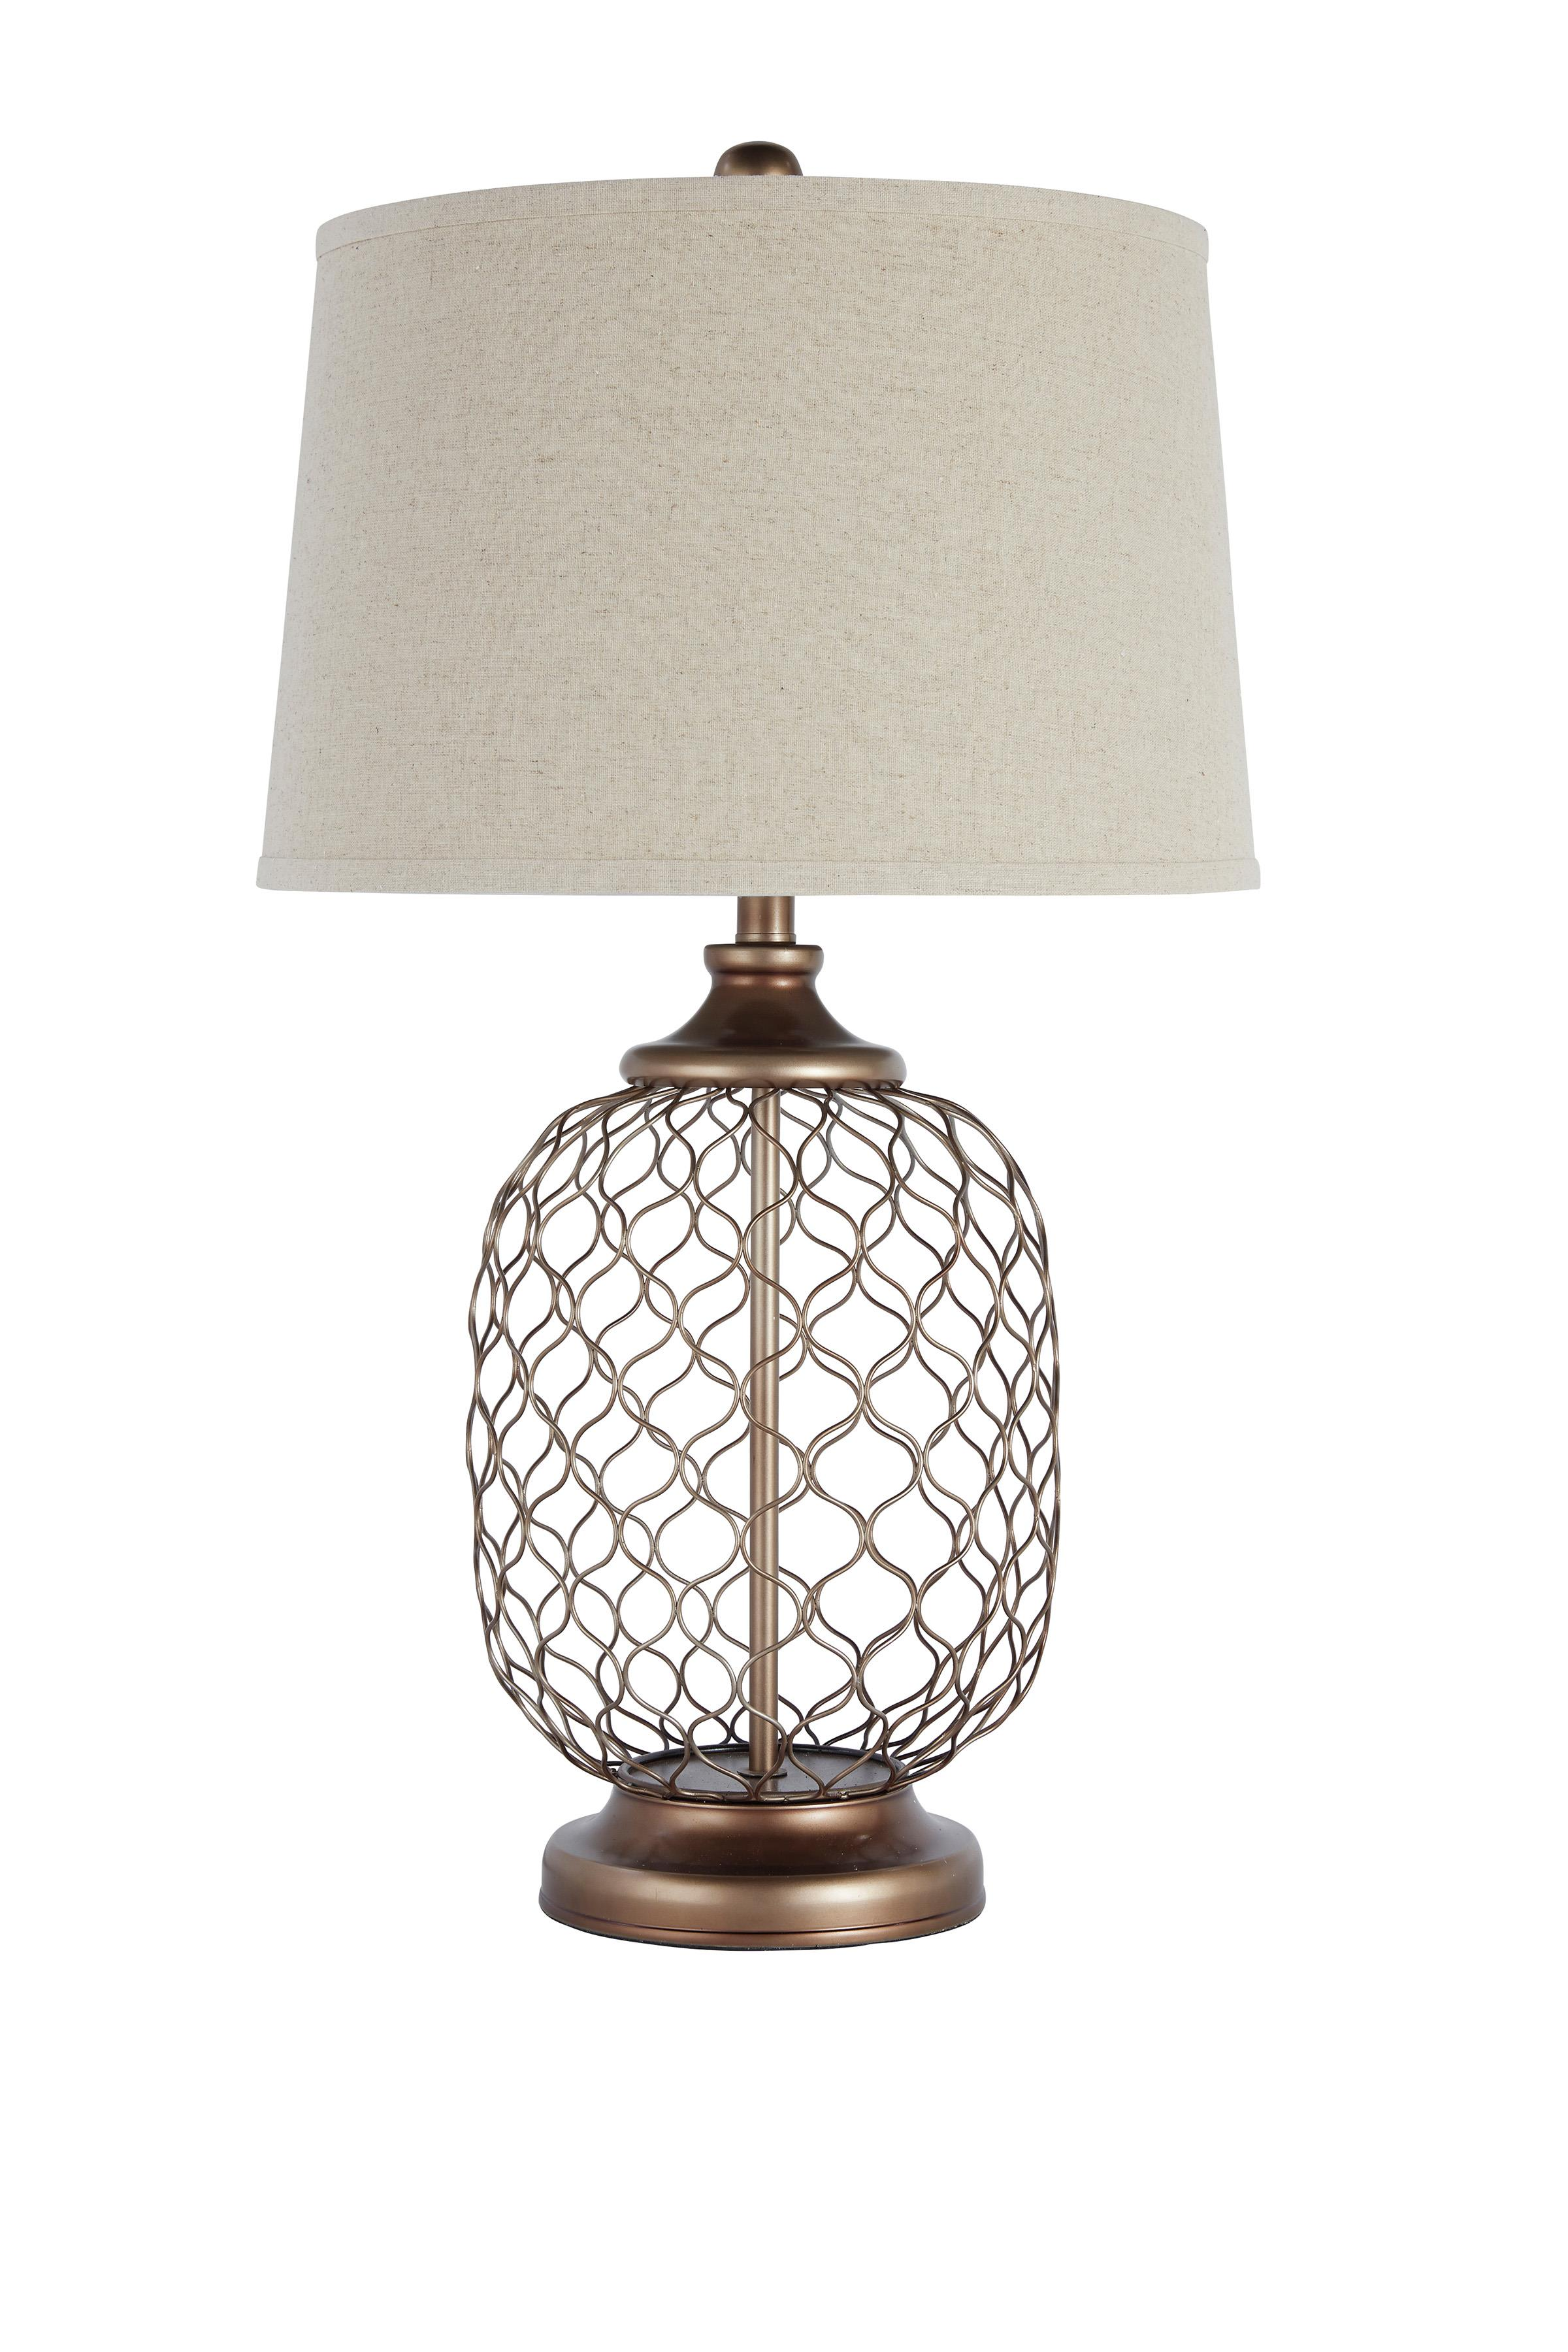 Signature Design by Ashley Lamps - Vintage Style Metal Table Lamp  - Item Number: L207824